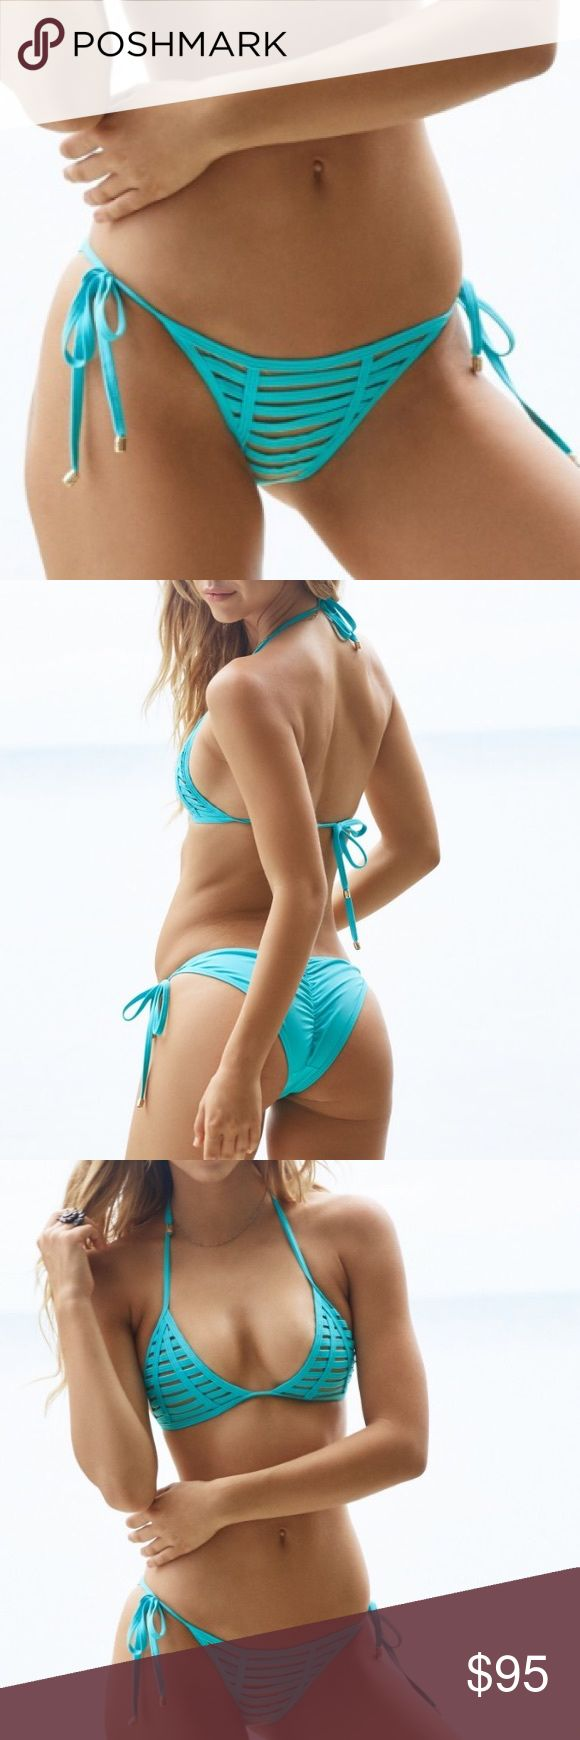 NWT💠Beach Bunny Hard Summer Triangle Top The super popular Hard Summer is now available in Aqua! The suit features a triangle top.   The top ties at the neck and back and has gorgeous corded Beach Bunny ends. . Beach Bunny Swim Bikinis